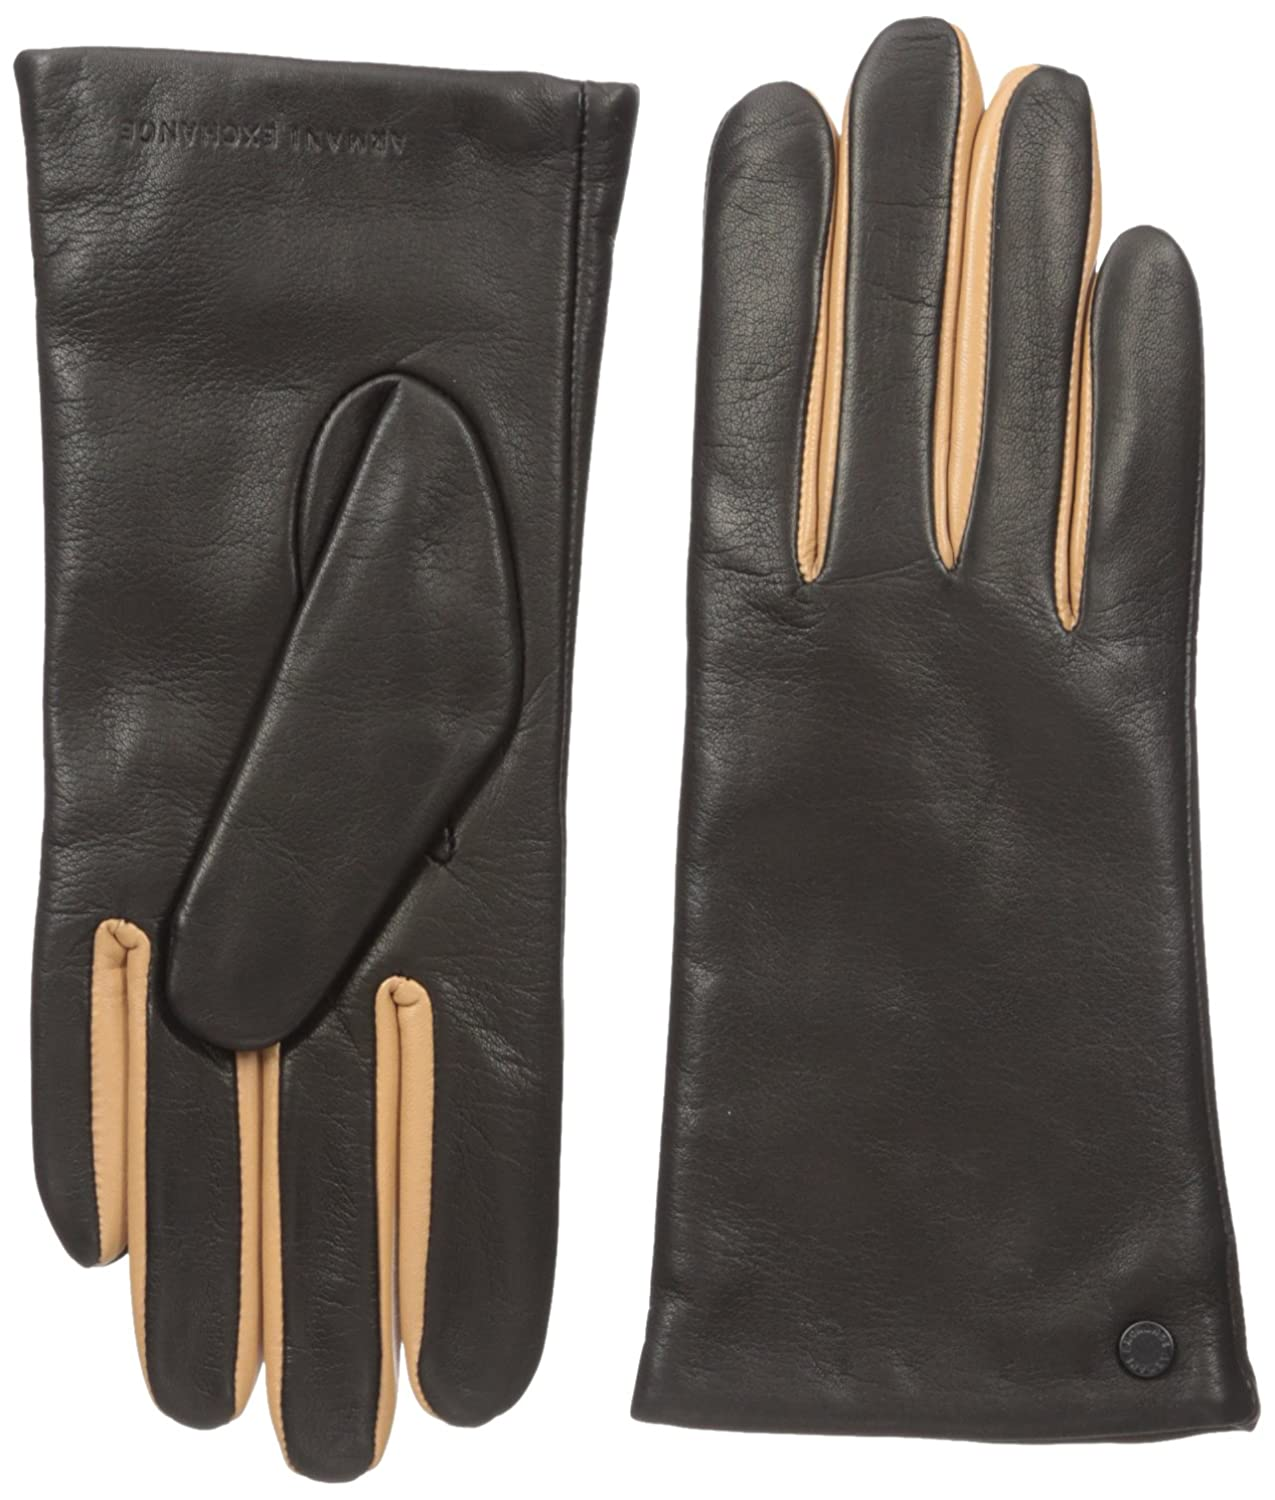 Armani exchange black leather gloves - A X Armani Exchange Women S Simple Leather Gloves Black X Small Small At Amazon Women S Clothing Store